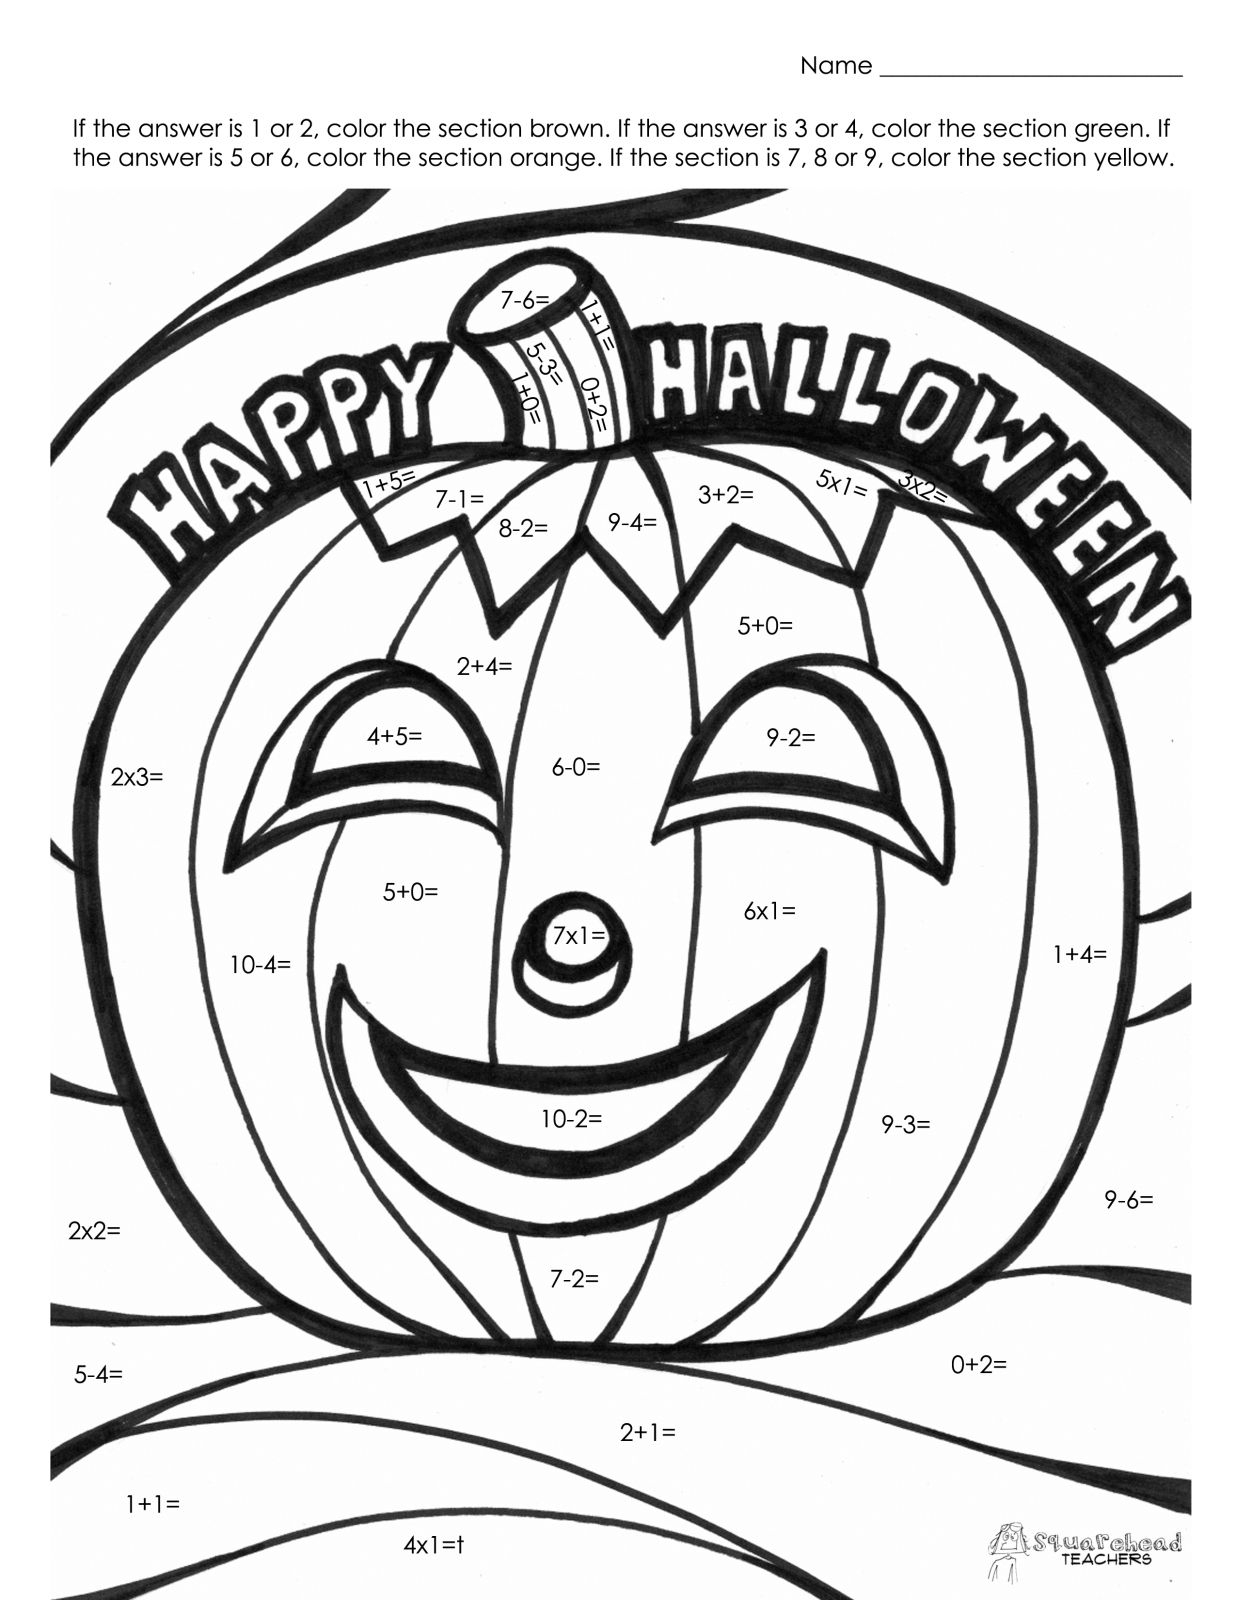 Coloring Pages : Halloween Math Fact Coloring Number regarding Free Printable Halloween Multiplication Color By Number